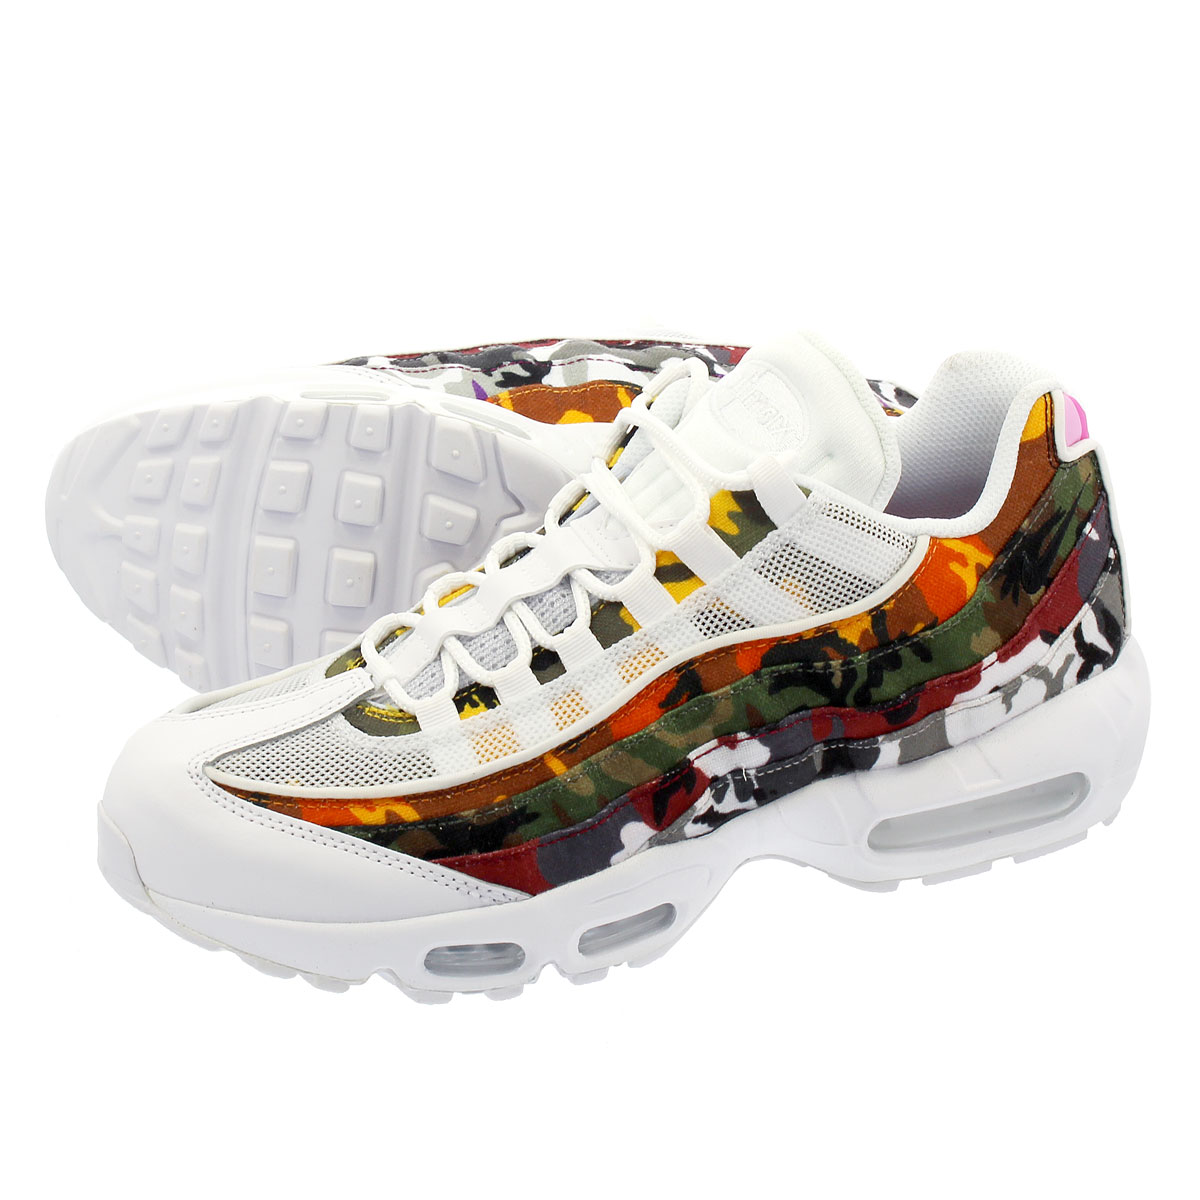 where can i buy nike air max 95 white camo 6898d 2d8a3